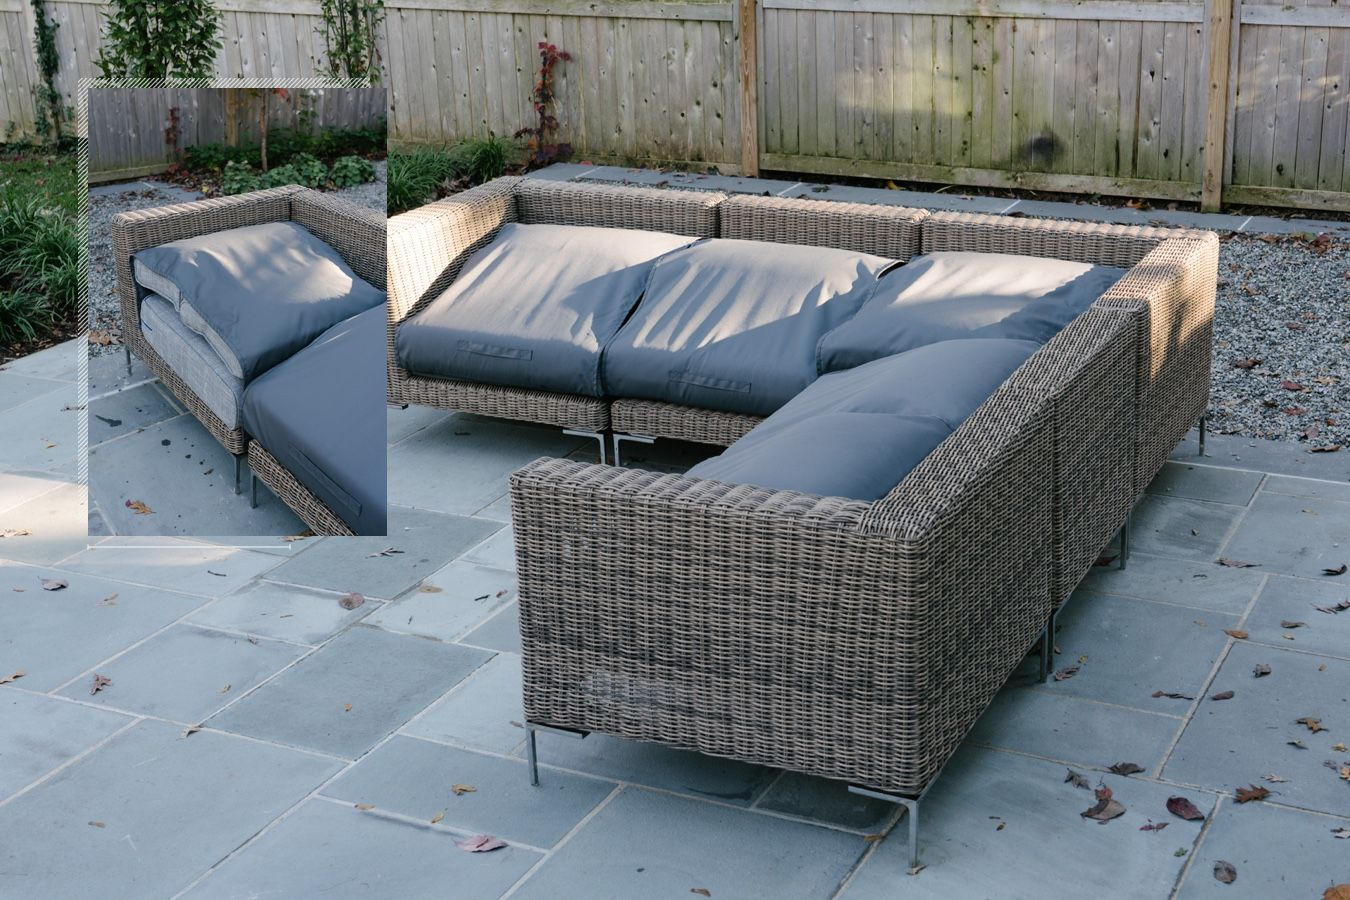 Outer patio furniture with cover to protect it.